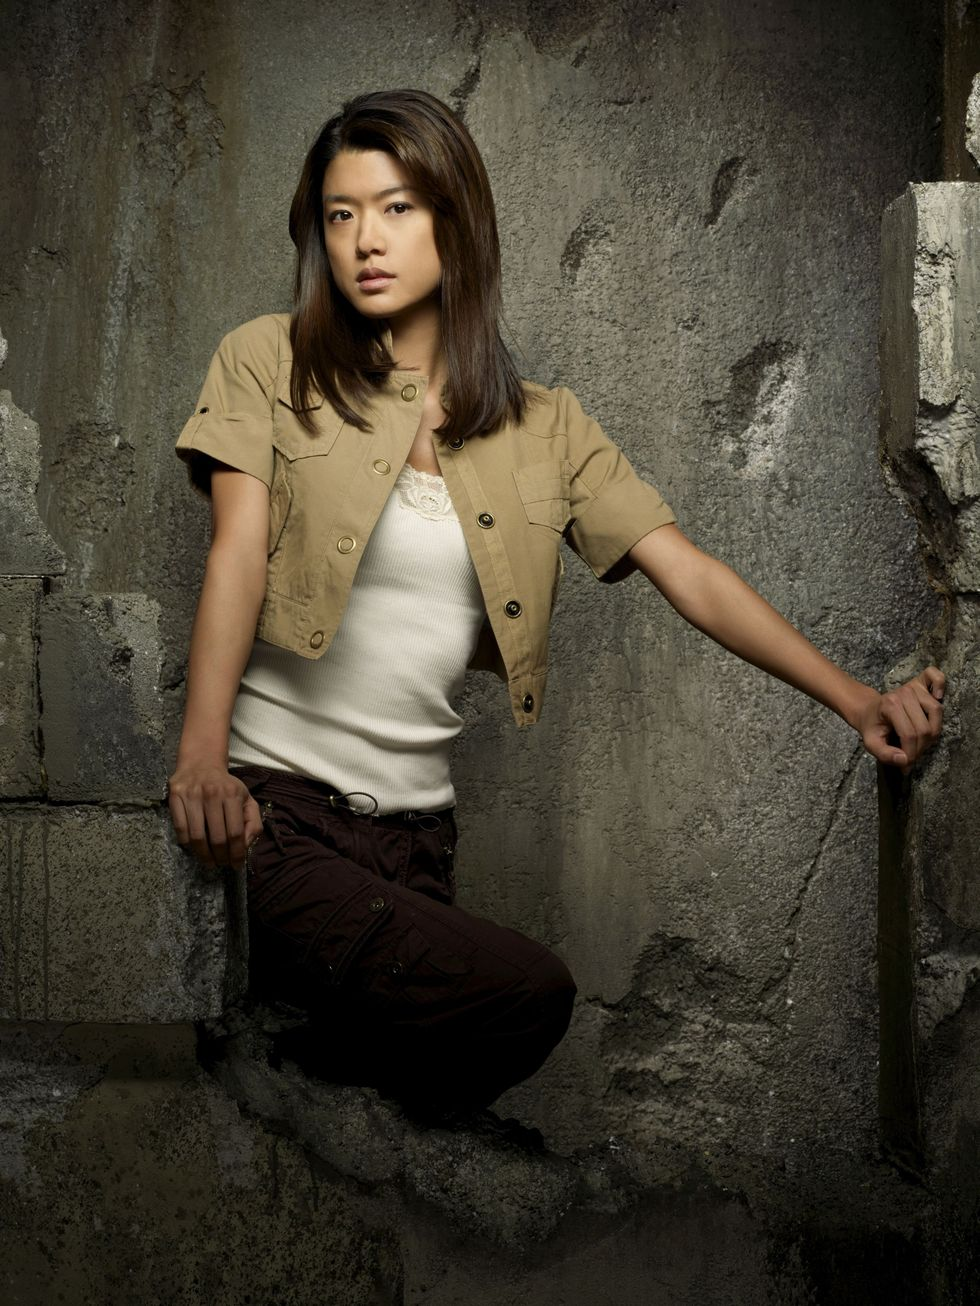 grace-park-and-tricia-helfer-battlestar-galactica-season-4-promos-01